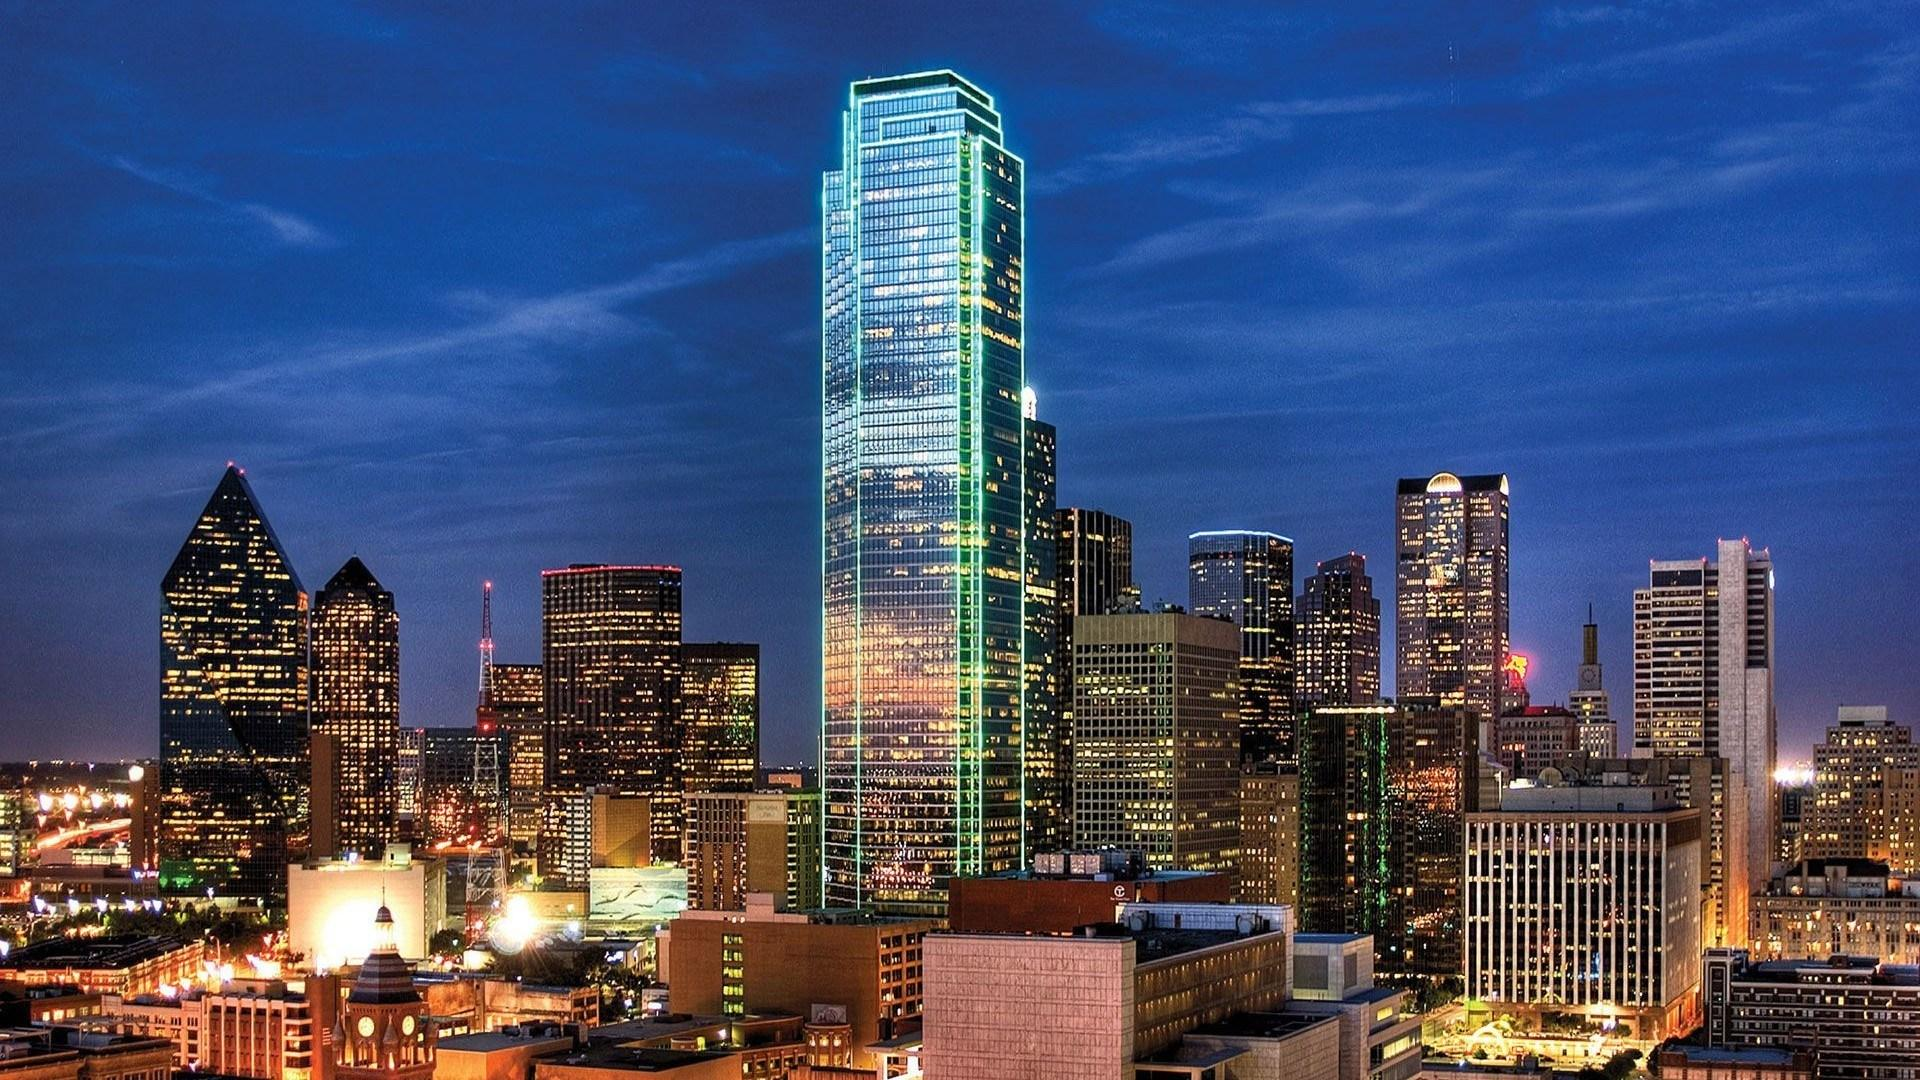 Dallas Wallpapers Best Of San Francisco Skyline at Night Wallpapers Hd